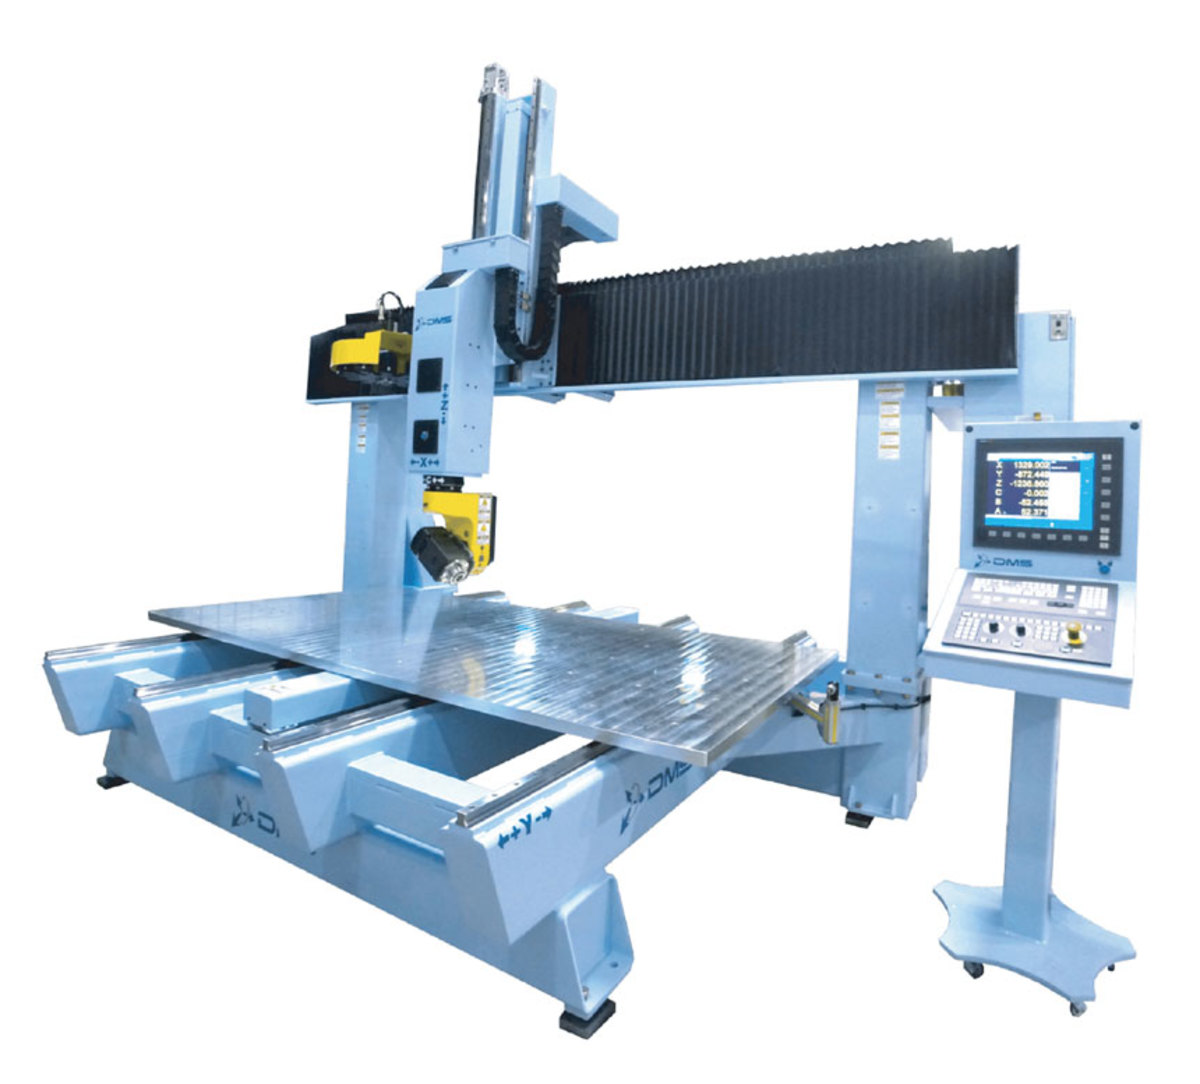 The DMS 5-axis